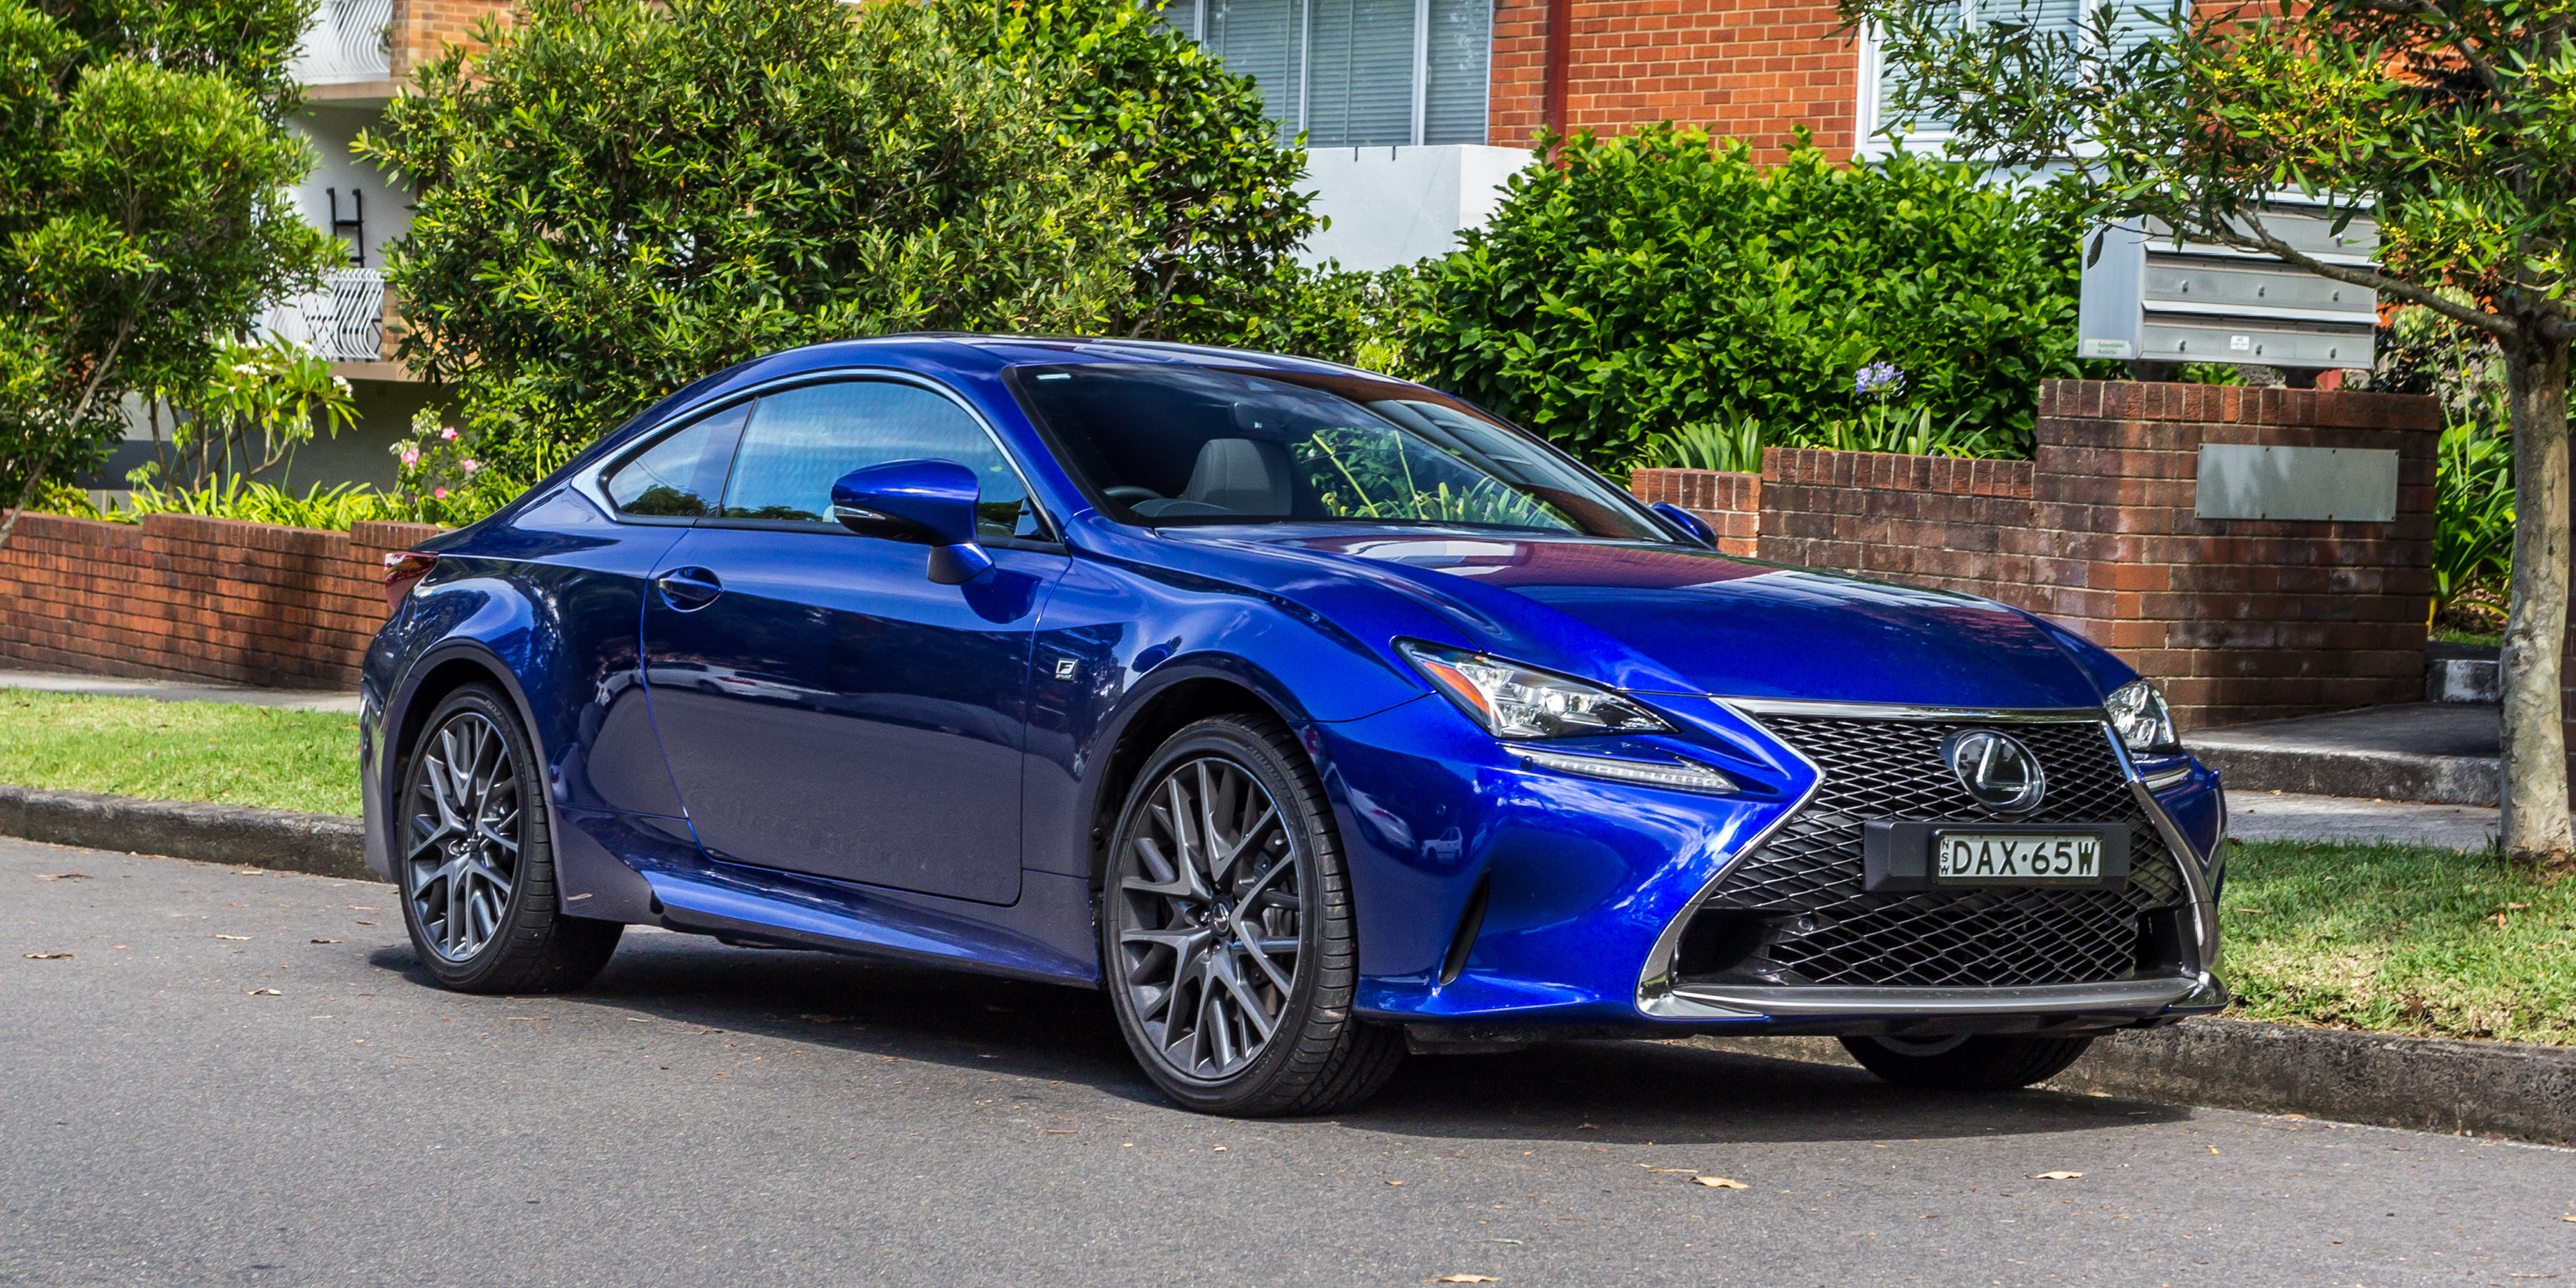 2016 Lexus RC200t F Sport Review - Photos